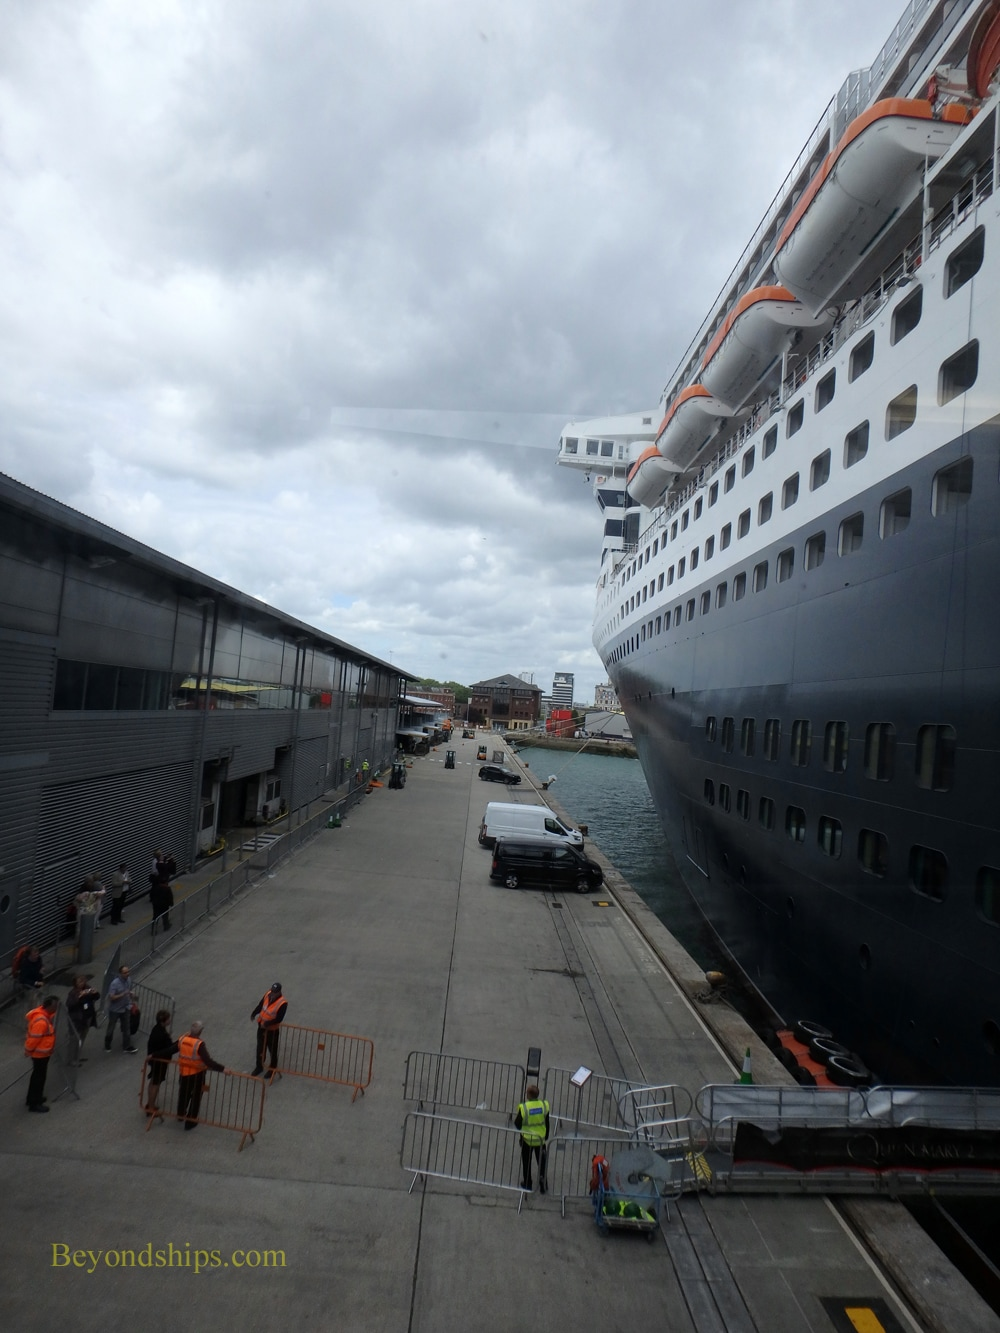 Queen Mary 2 preparing to sail